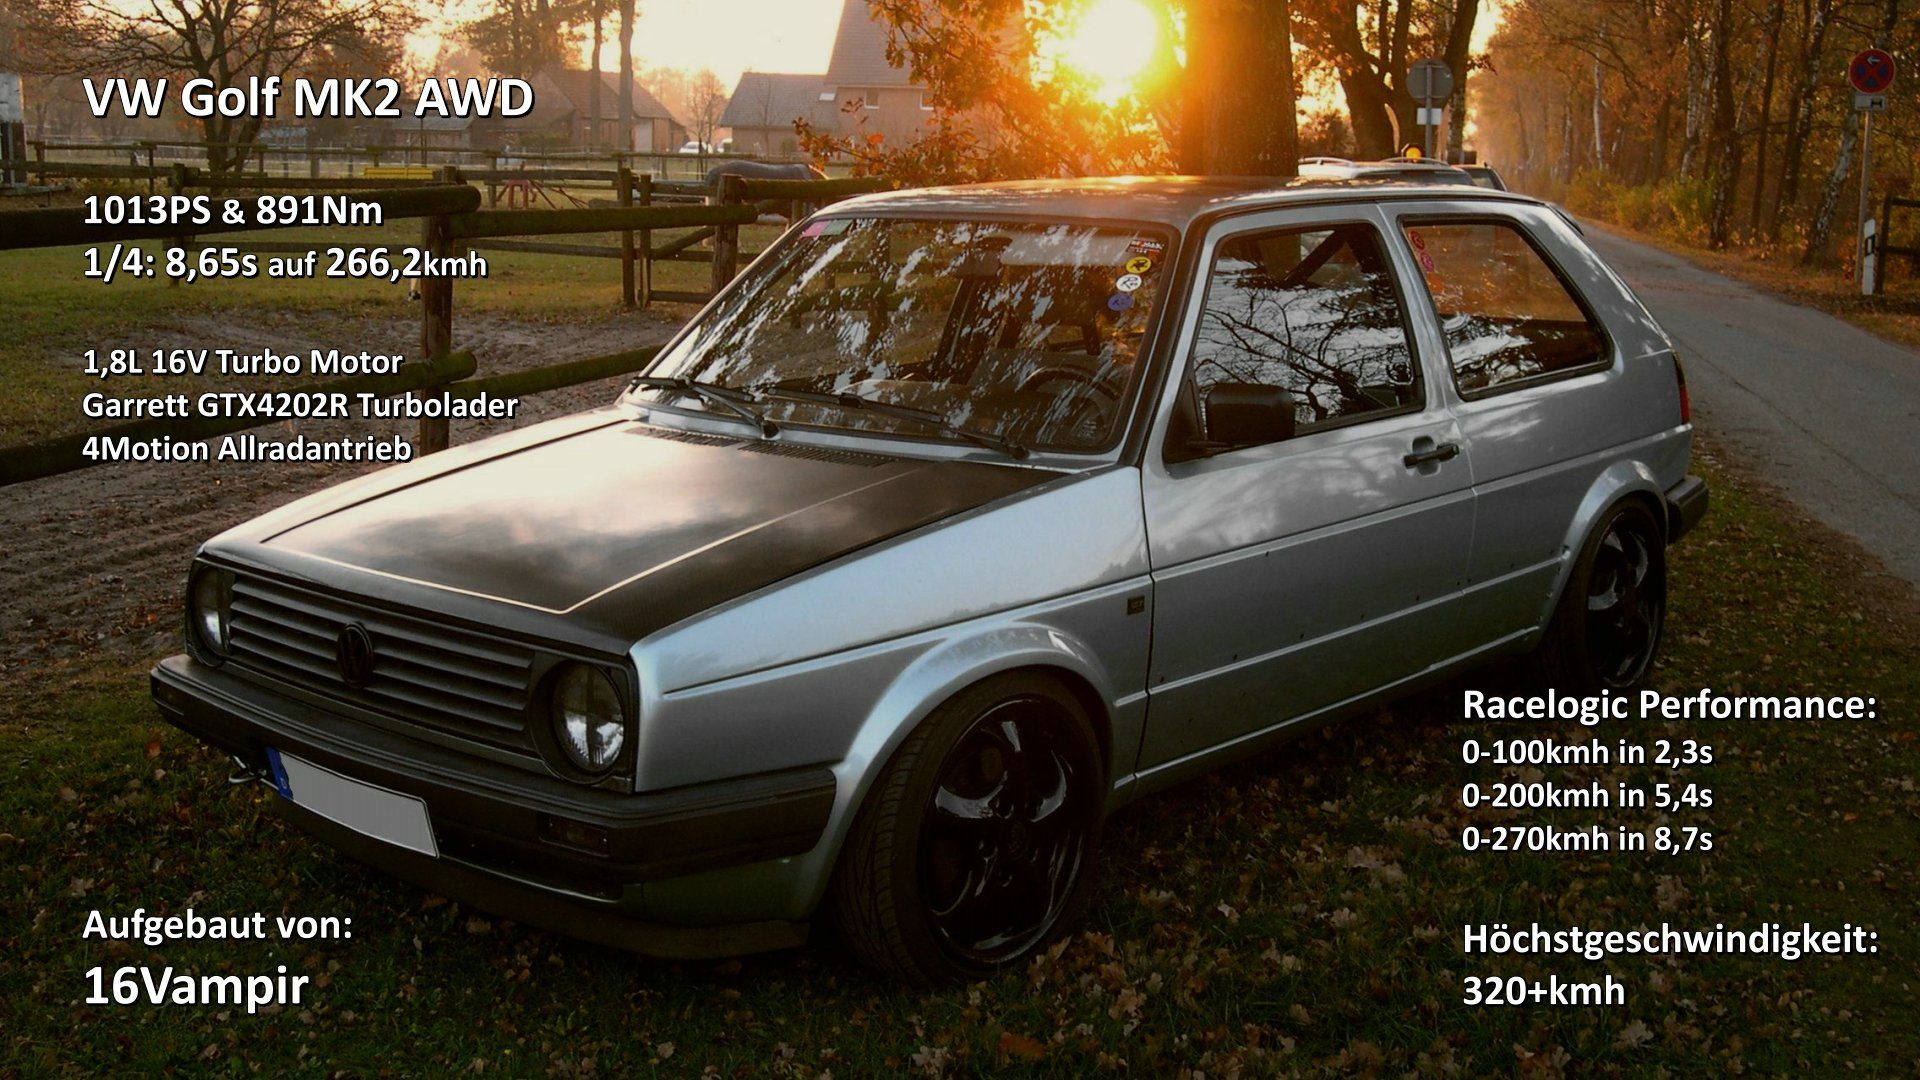 Pictures Of Decently Modified Cars Vol 2 Page 101 General Gassing Golf Mk2 Volkswagen Golf Mk2 Vw Golf